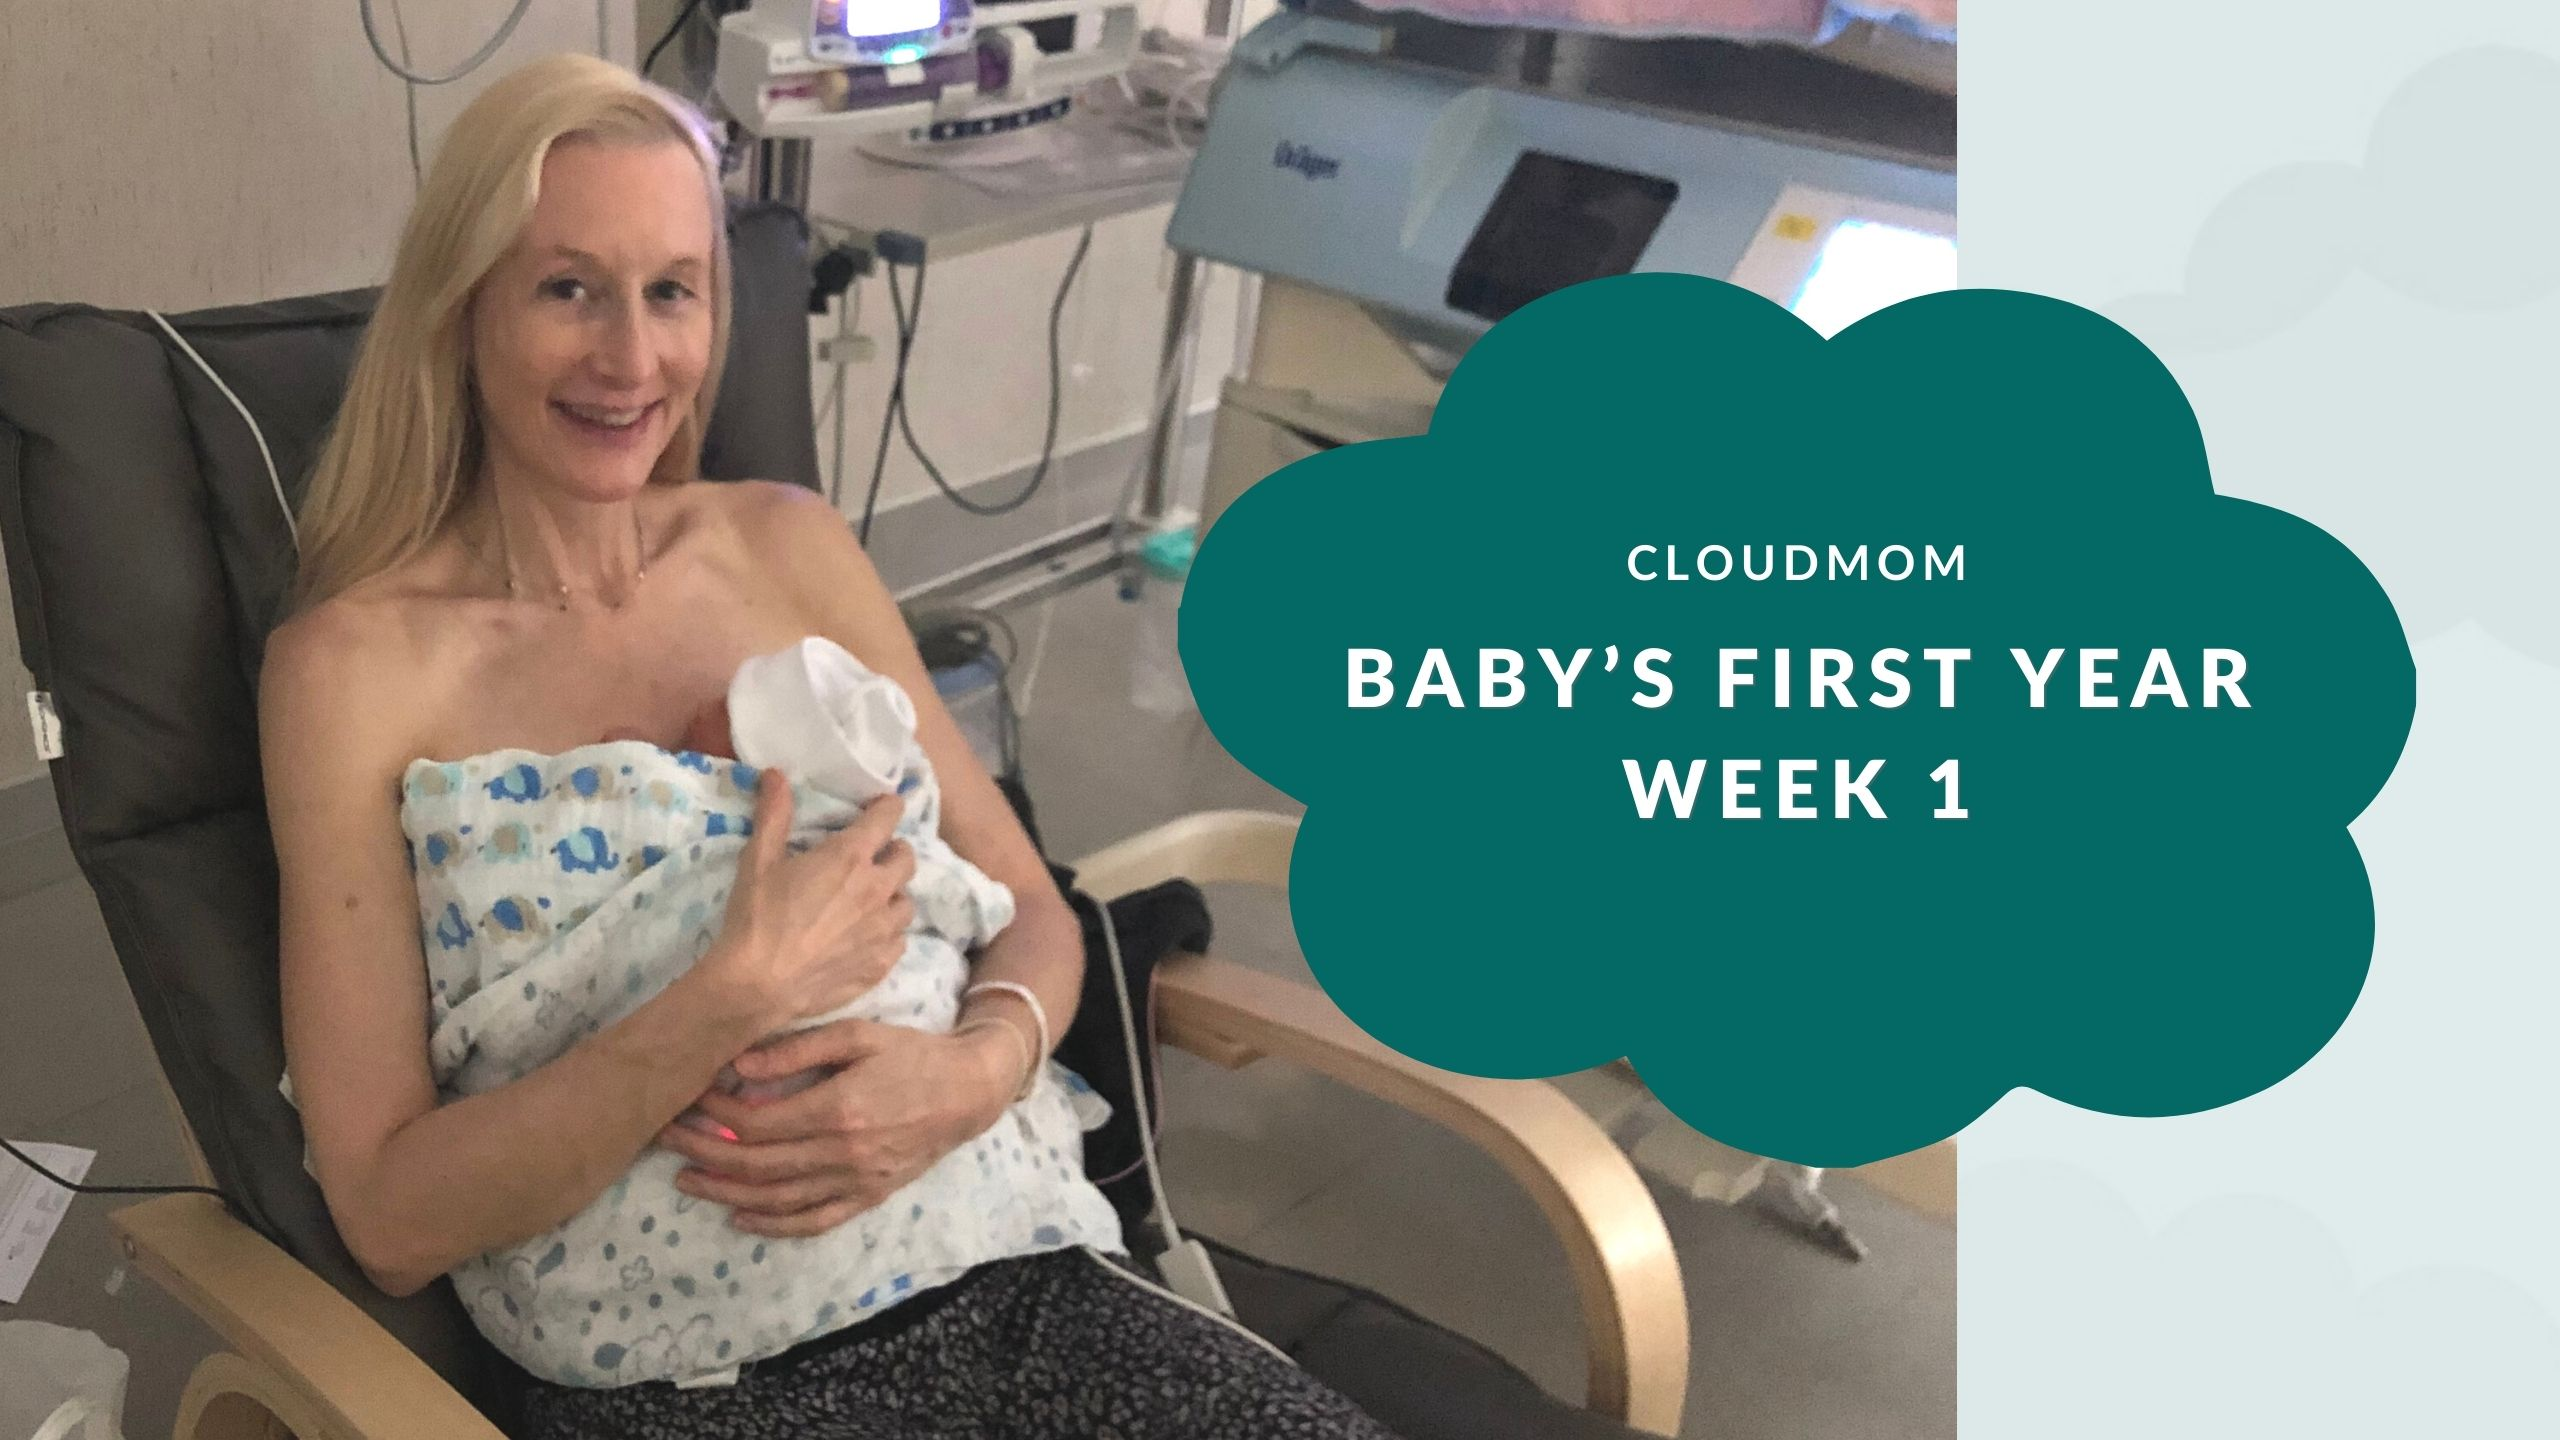 CloudMom Week 1 Babys First Year